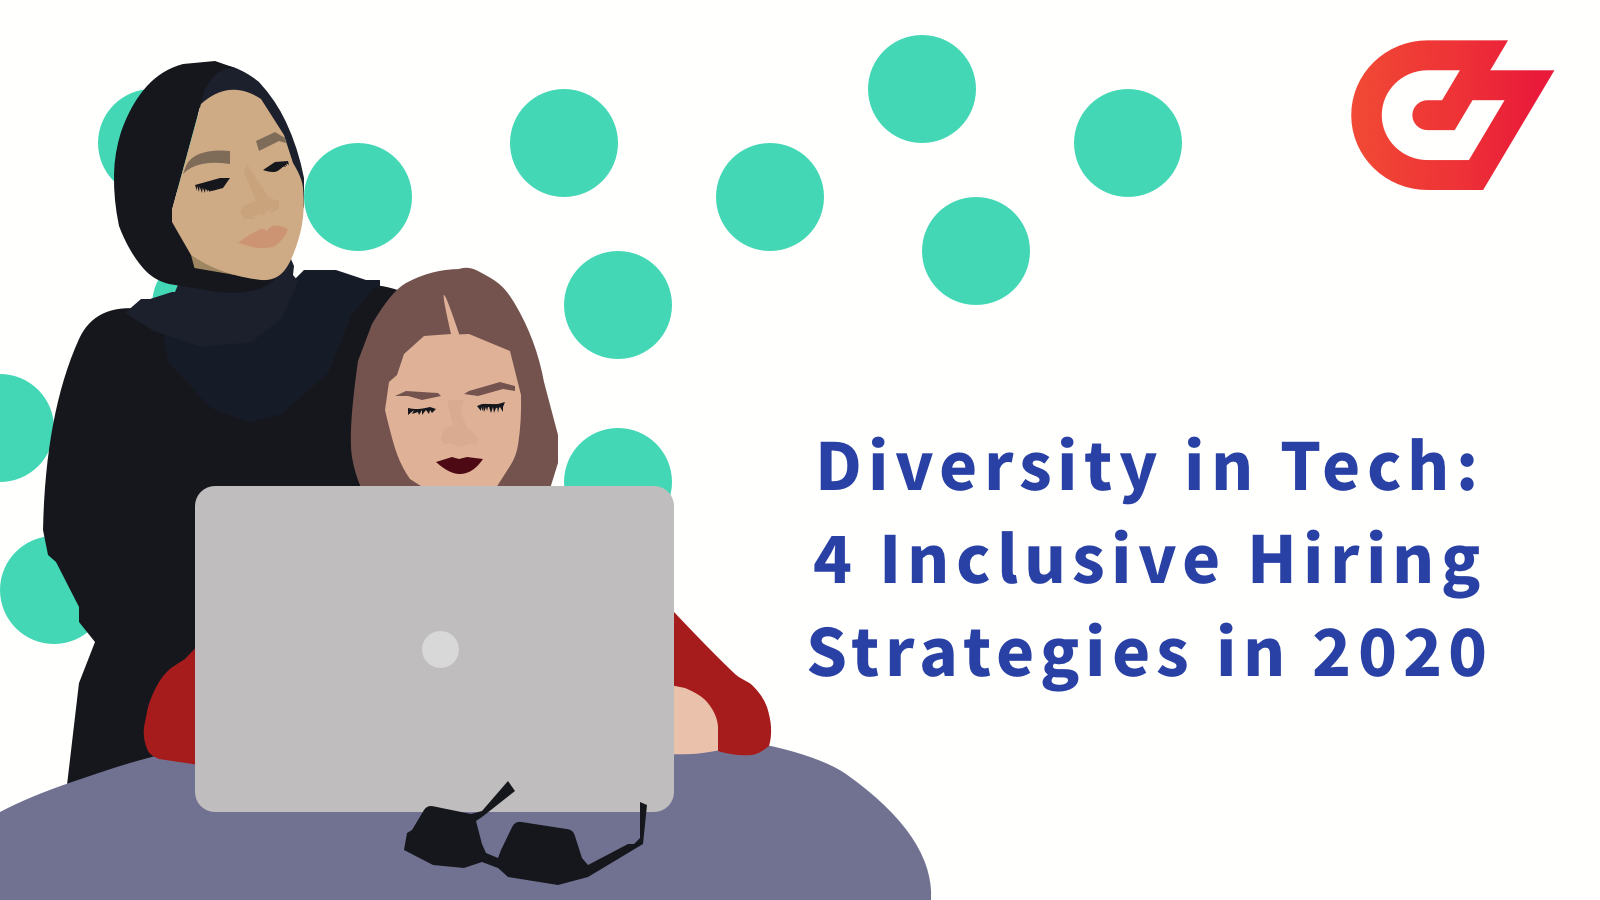 Diversity in Tech: 4 Inclusive Hiring Strategies in 2020